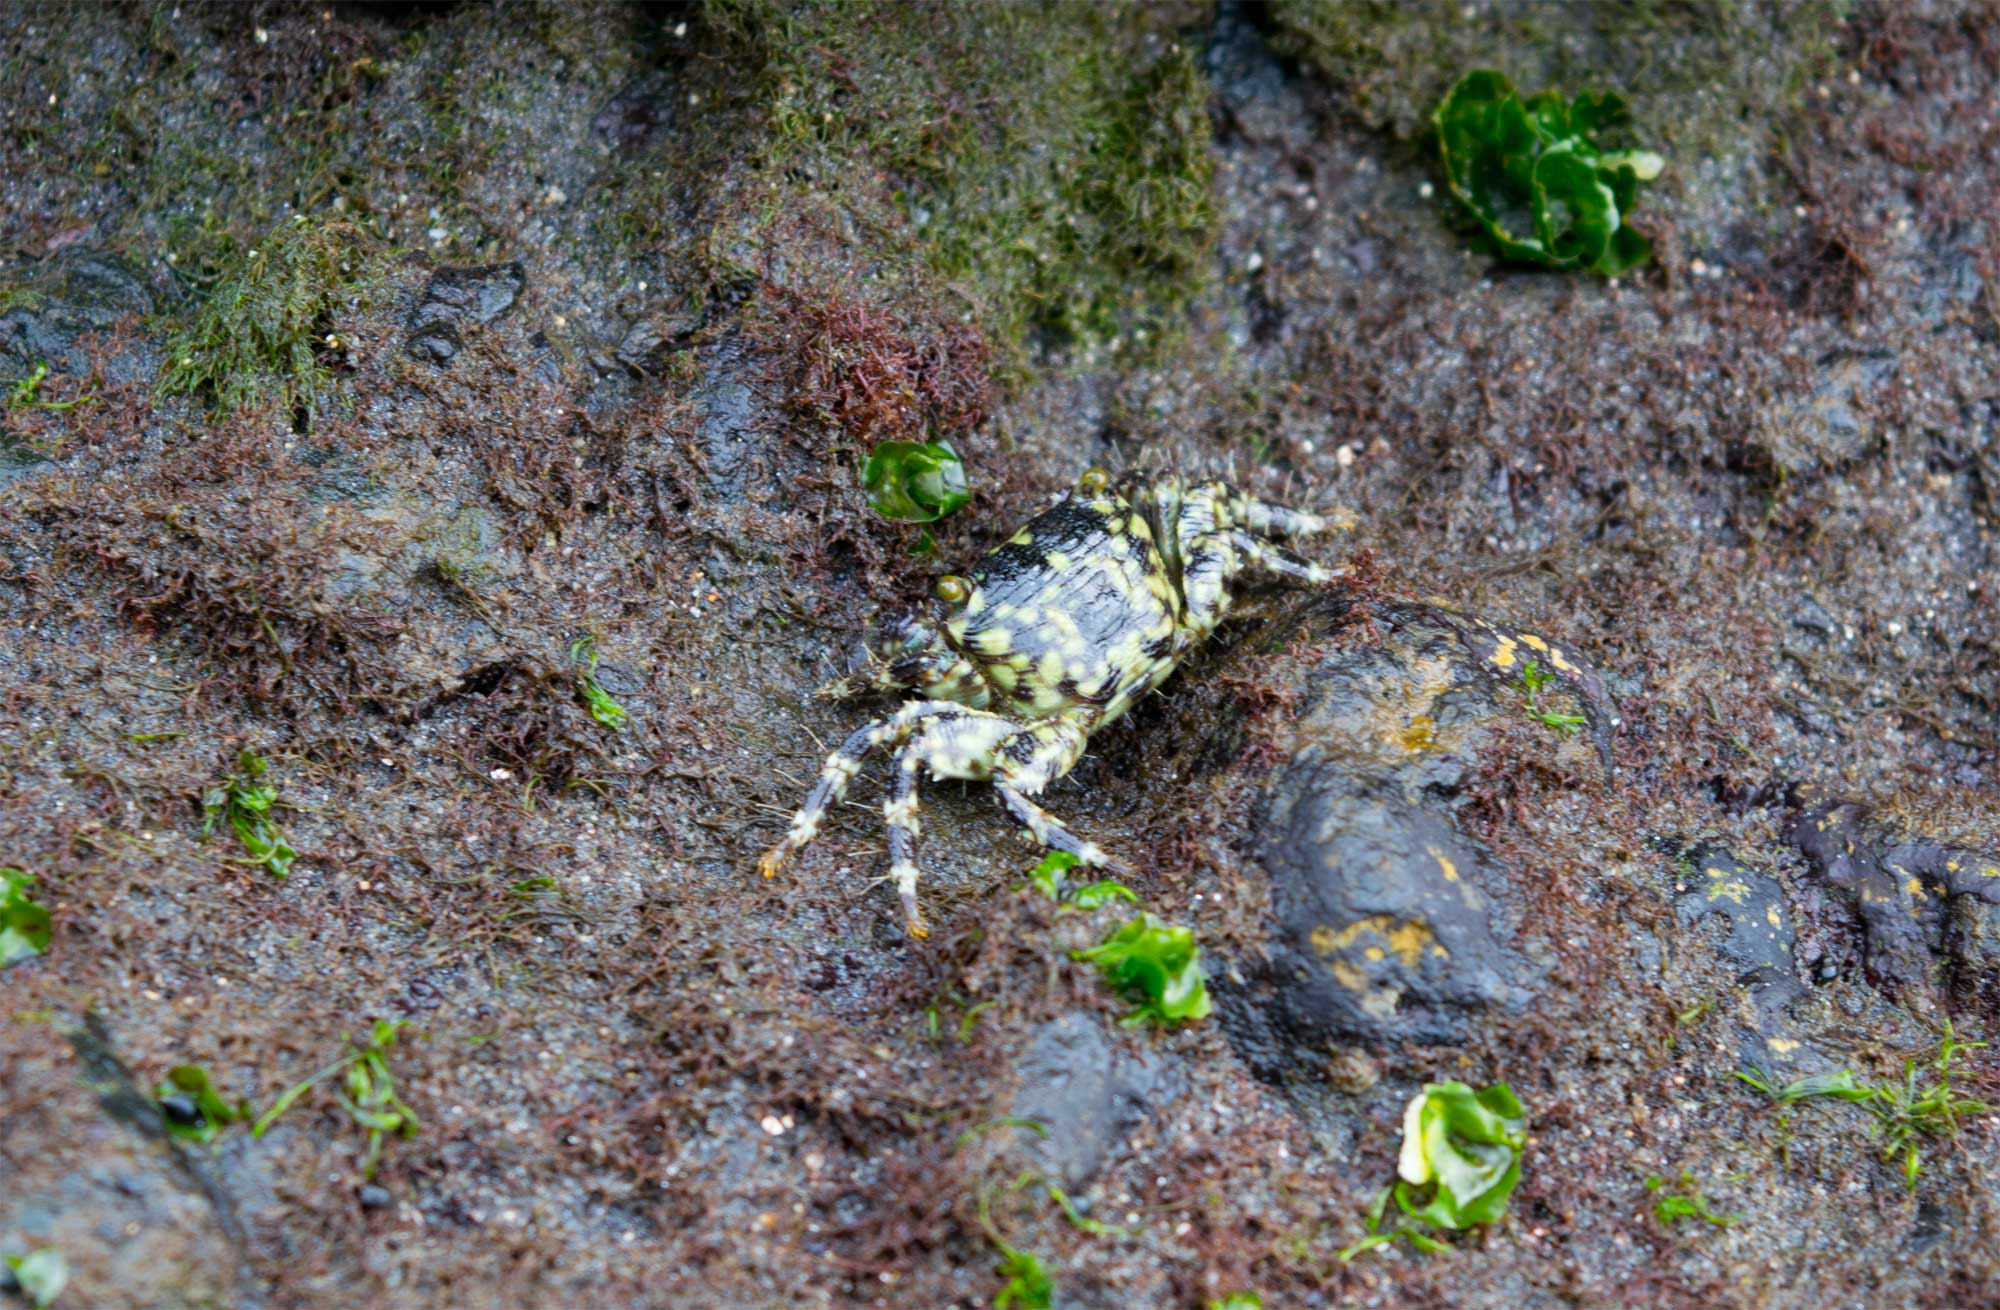 Off the path - The Pura Tanah Lot Bali - Crab Colony - Travel Blog - Scew Them All